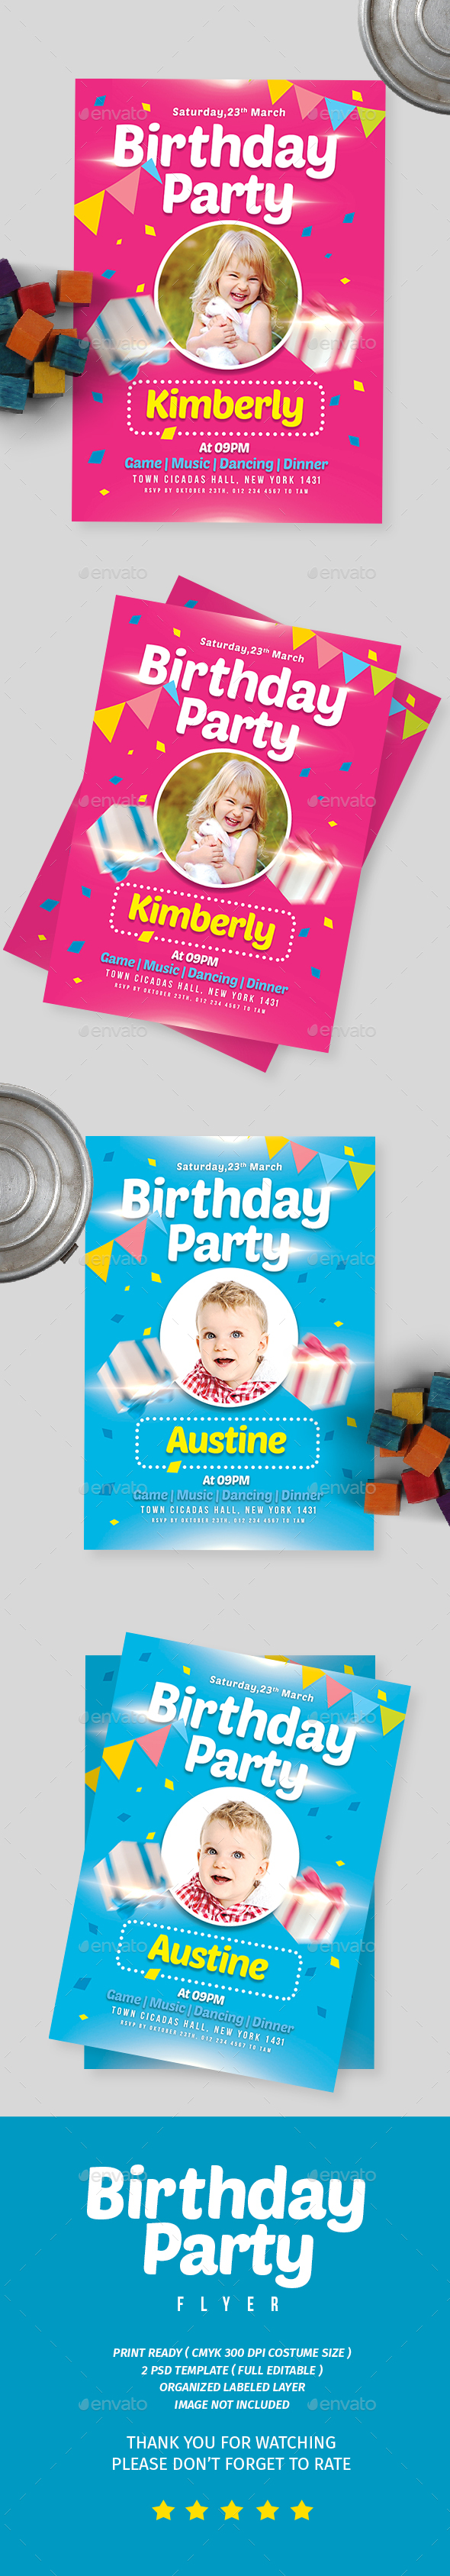 Kids Birthday Party Invitation - Flyers Print Templates